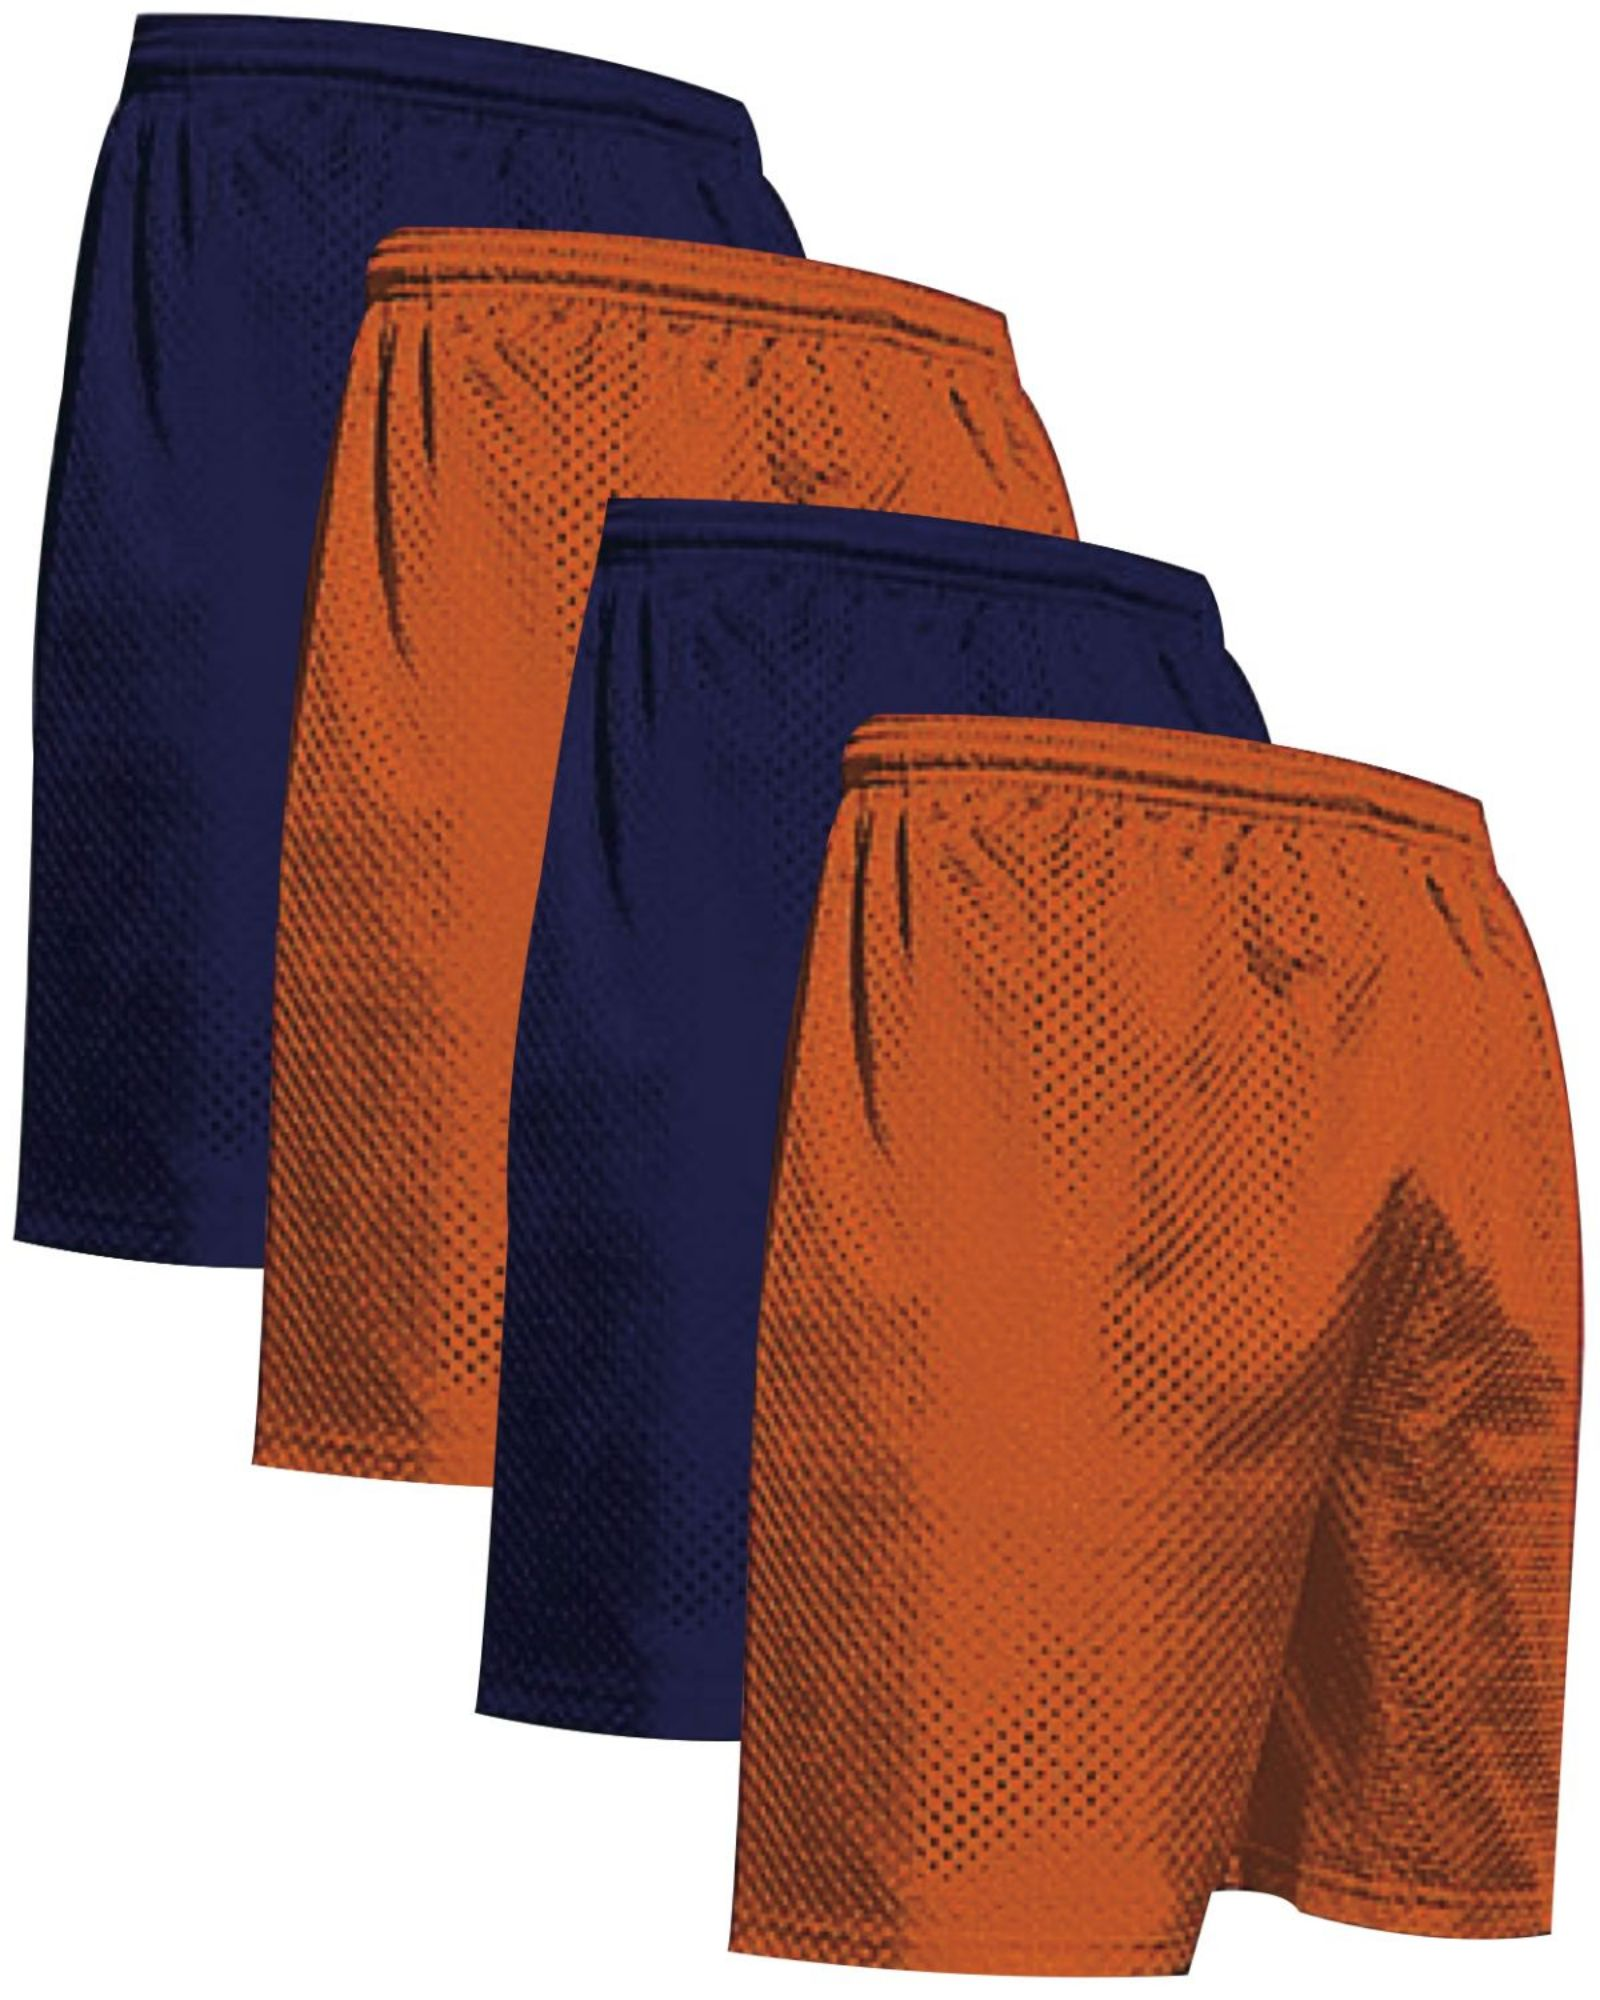 """VALUE PACK  > BUY 2 GET 2 FREE >  4 PACK > THE RAM BRAND > Men's  9"""" Performance Pro Mesh Gym Champ Shorts (XS-4XL) $10 S/H is on the 1st Pack only. In this Pack: (XS)(2Navy/2Orange)"""